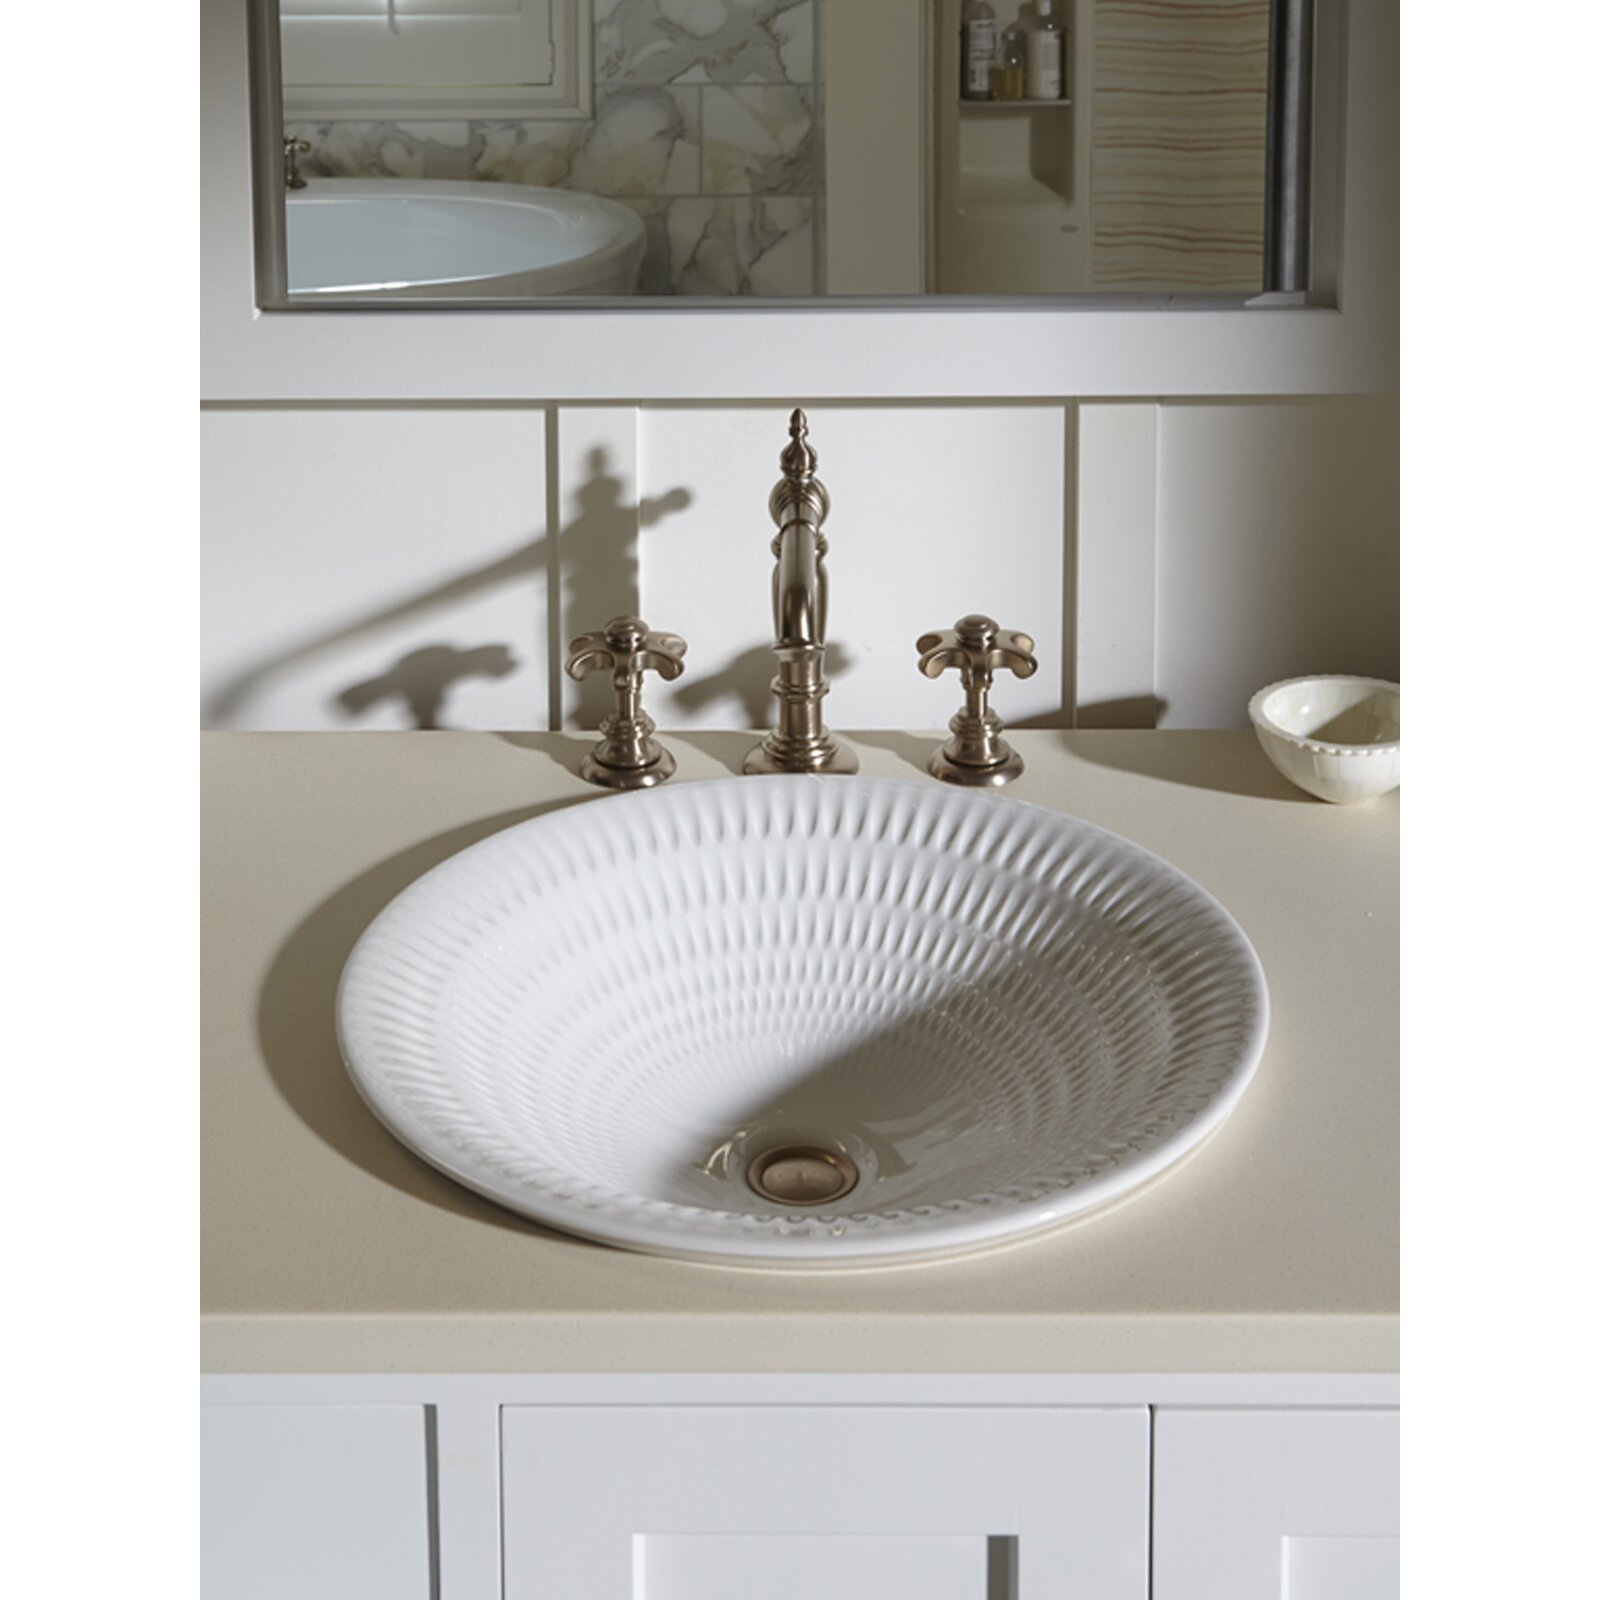 Kohler Derring Carillon Wading Vessel Bathroom Sink